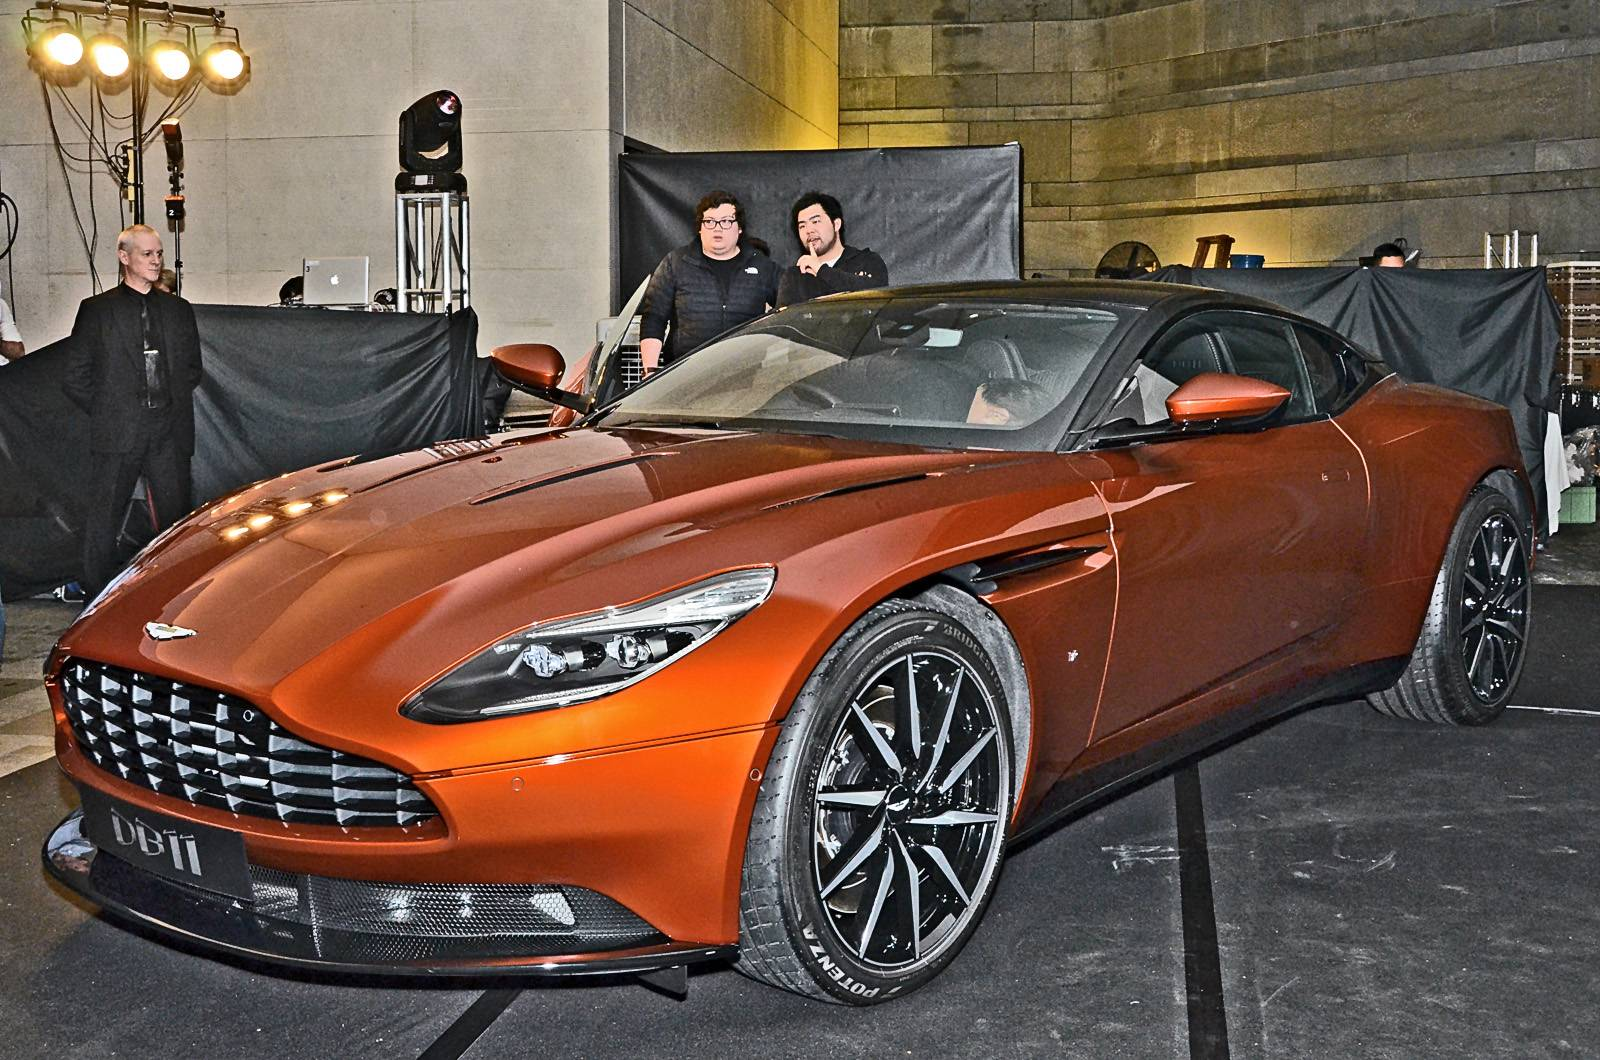 aston martin db11 unveiled in hong kong - exotic car list